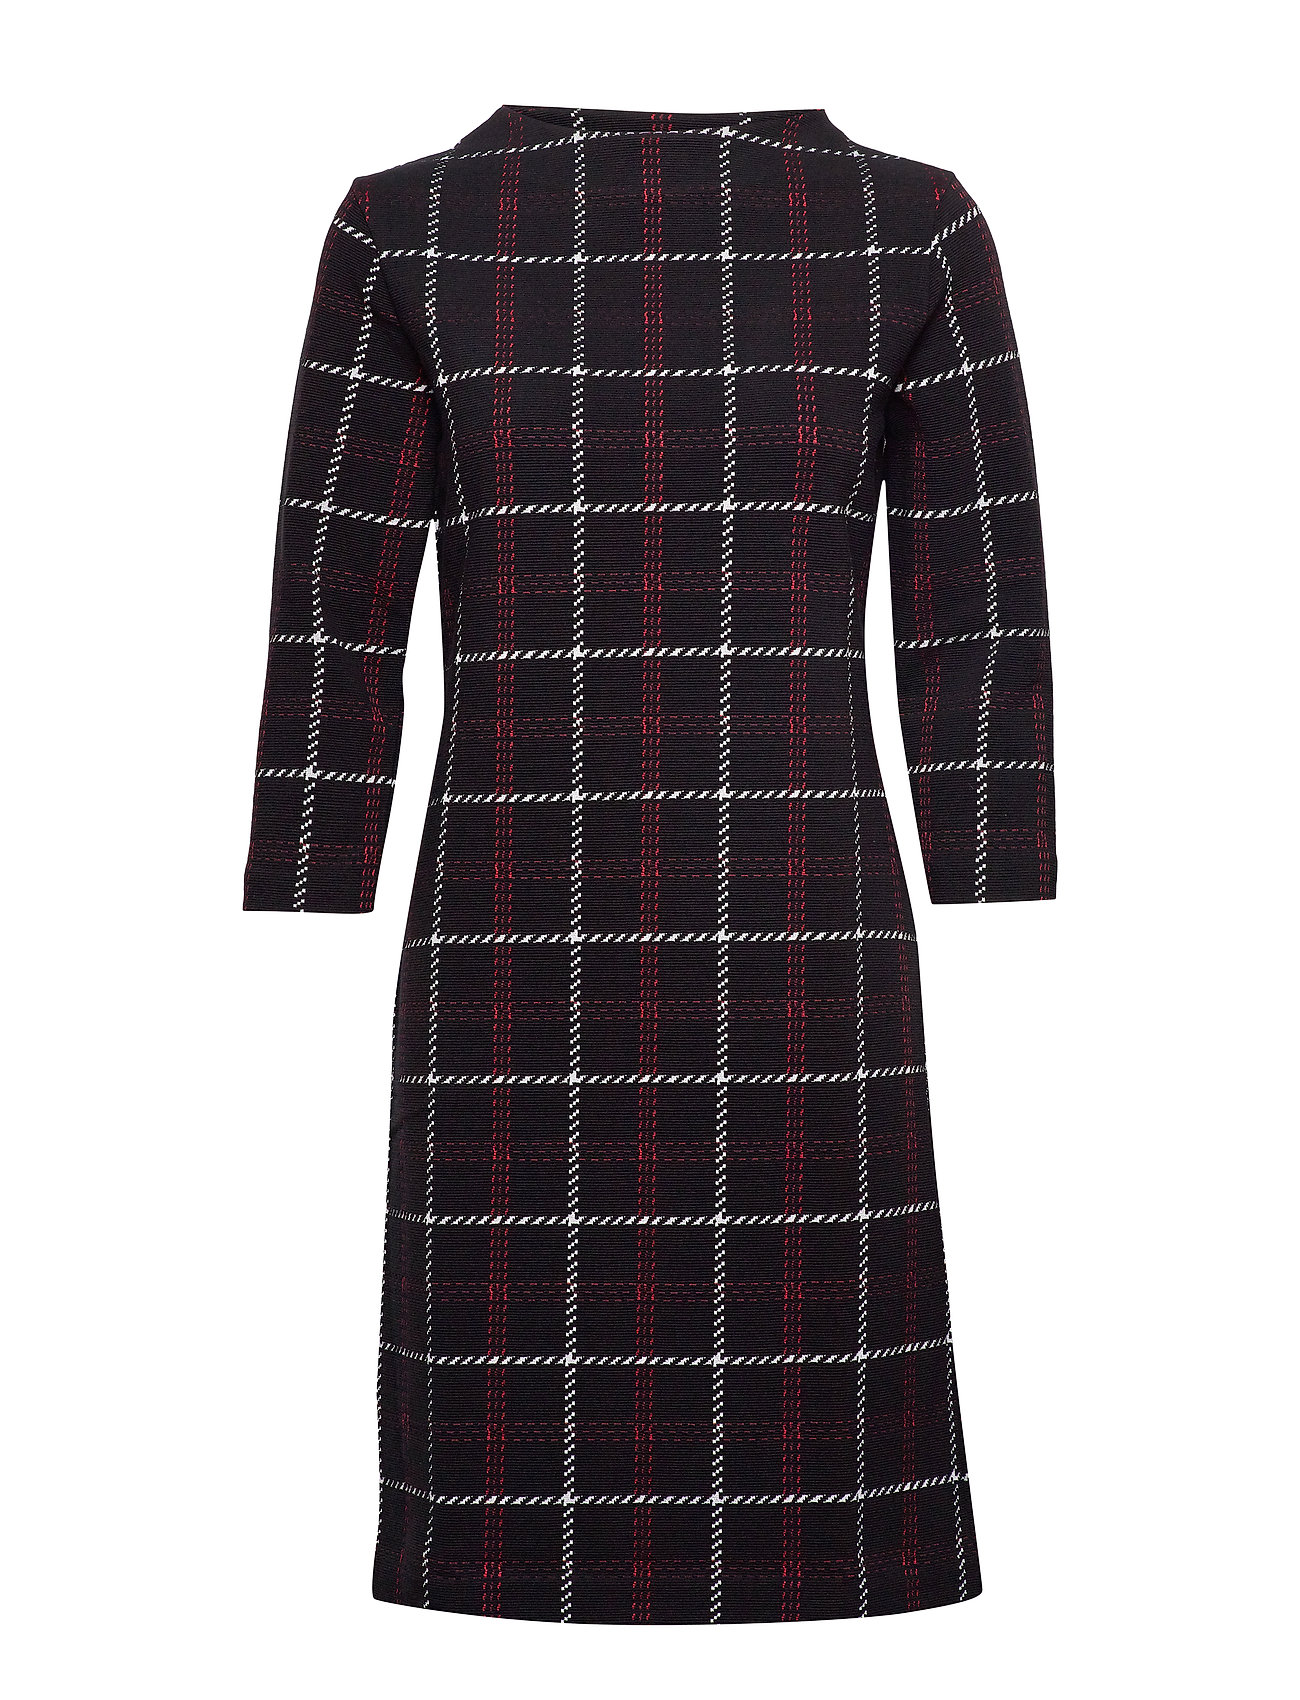 Gerry Weber DRESS KNITTED FABRIC - BLACK OFFWHITE RED CHECK